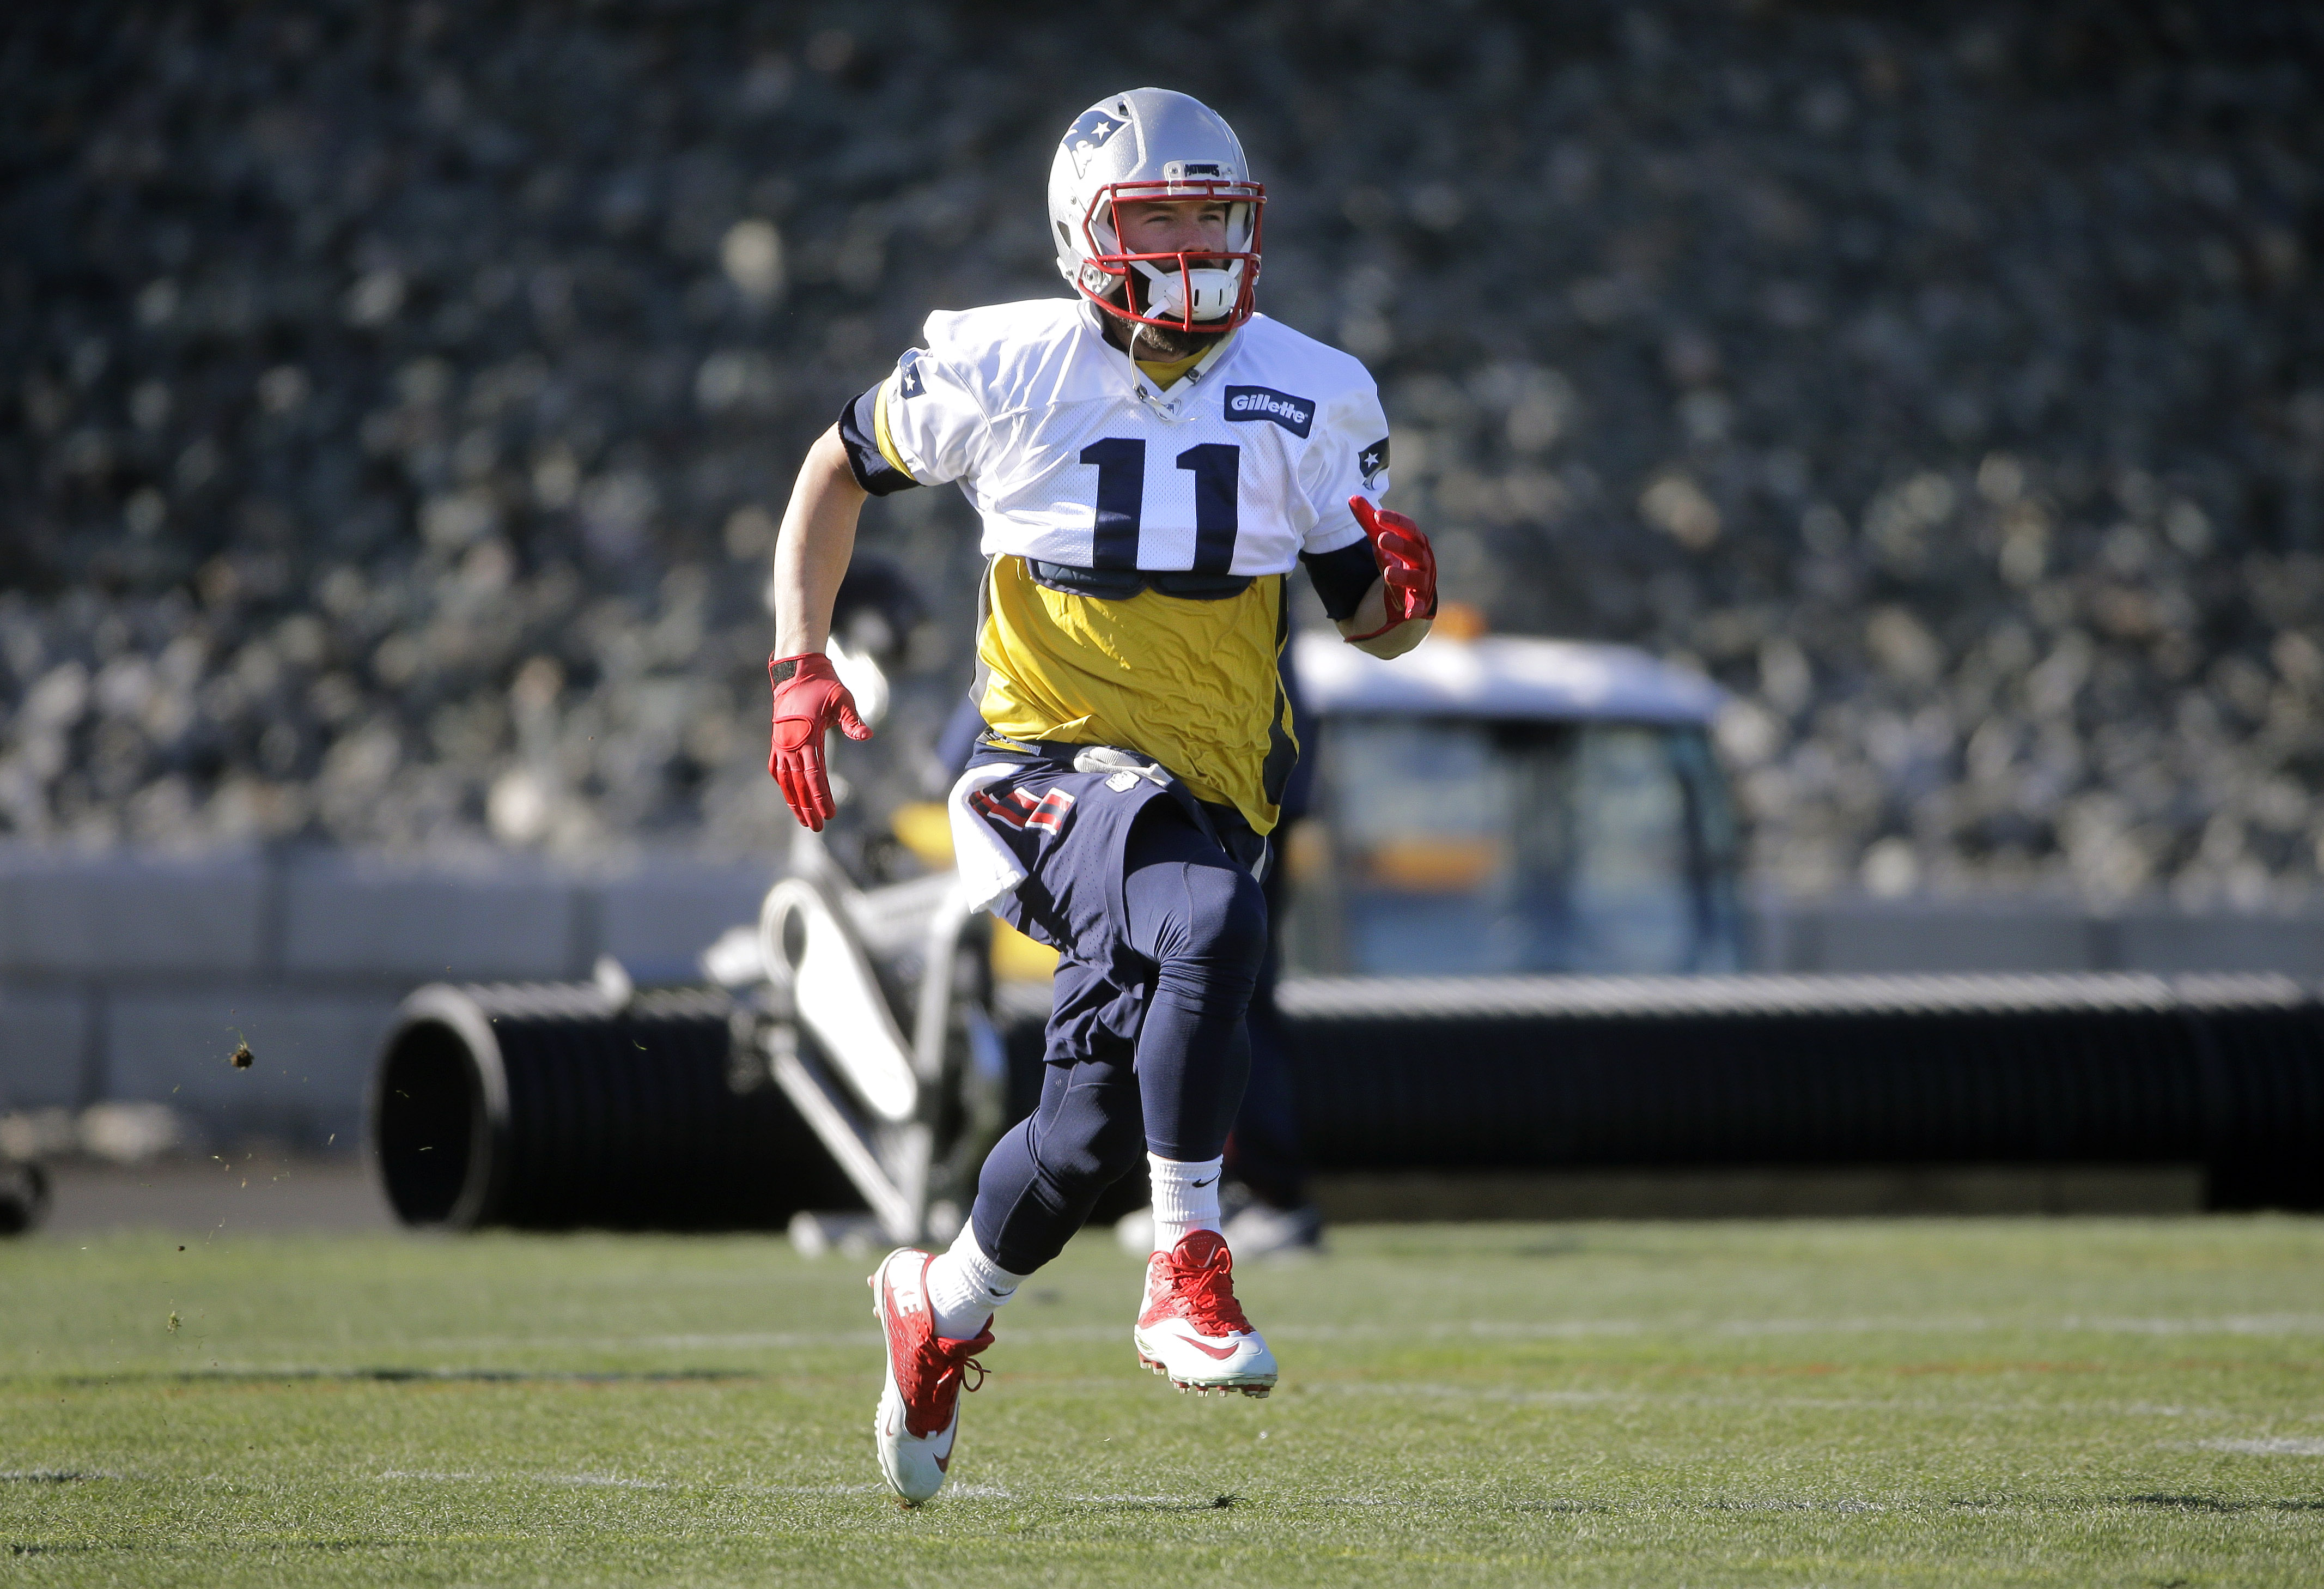 New England Patriots wide receiver Julian Edelman runs while warming up on the field during an NFL football practice, Monday, Jan. 11, 2016, in Foxborough, Mass. The Patriots are to host the Kansas City Chiefs in an NFL divisional playoff game Jan. 16, in